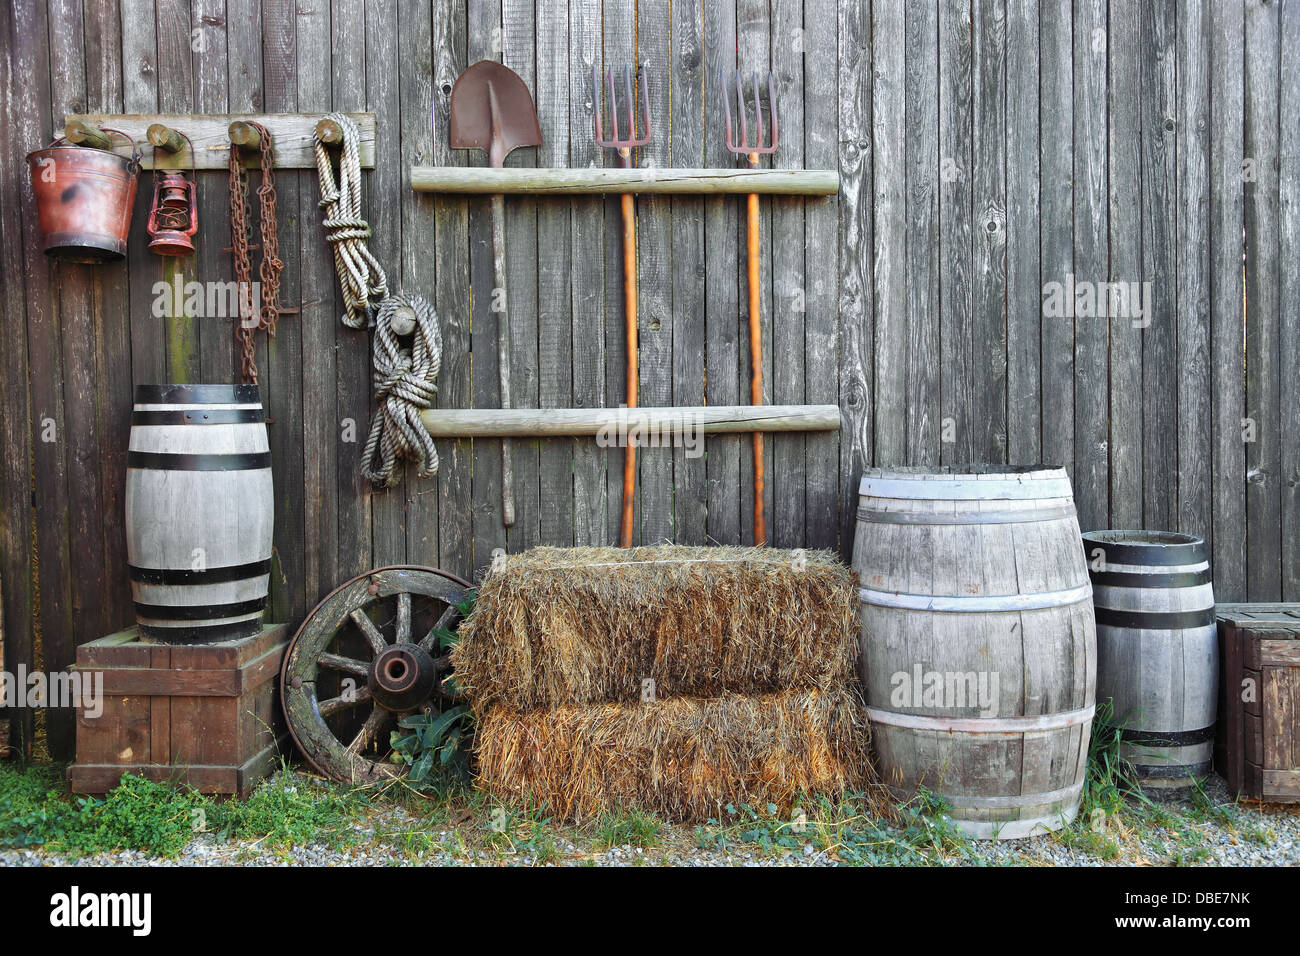 Barrel bale and fork in old barn - Stock Image